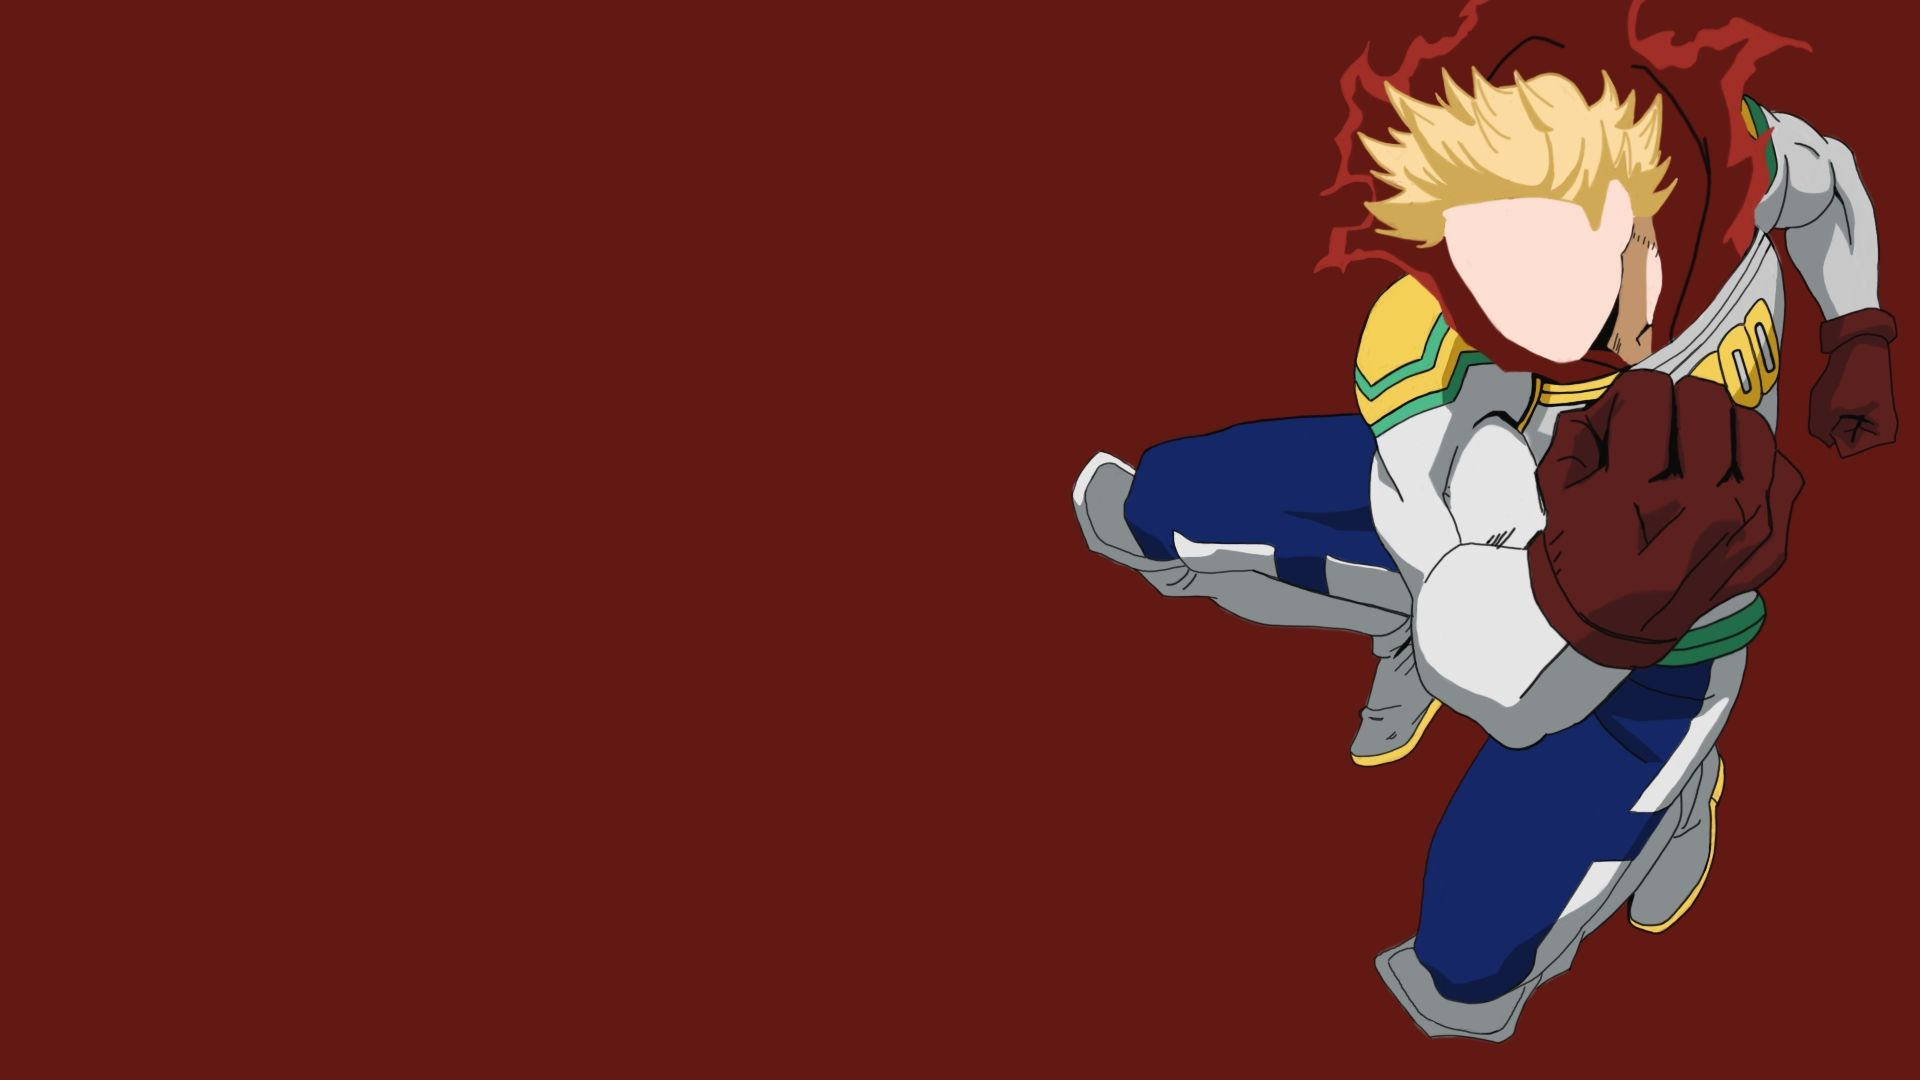 Lemillion Mirio Togata From My Hero Academia 1920 X 1080 In 2020 Hero Wallpaper Cool Anime Backgrounds My Hero